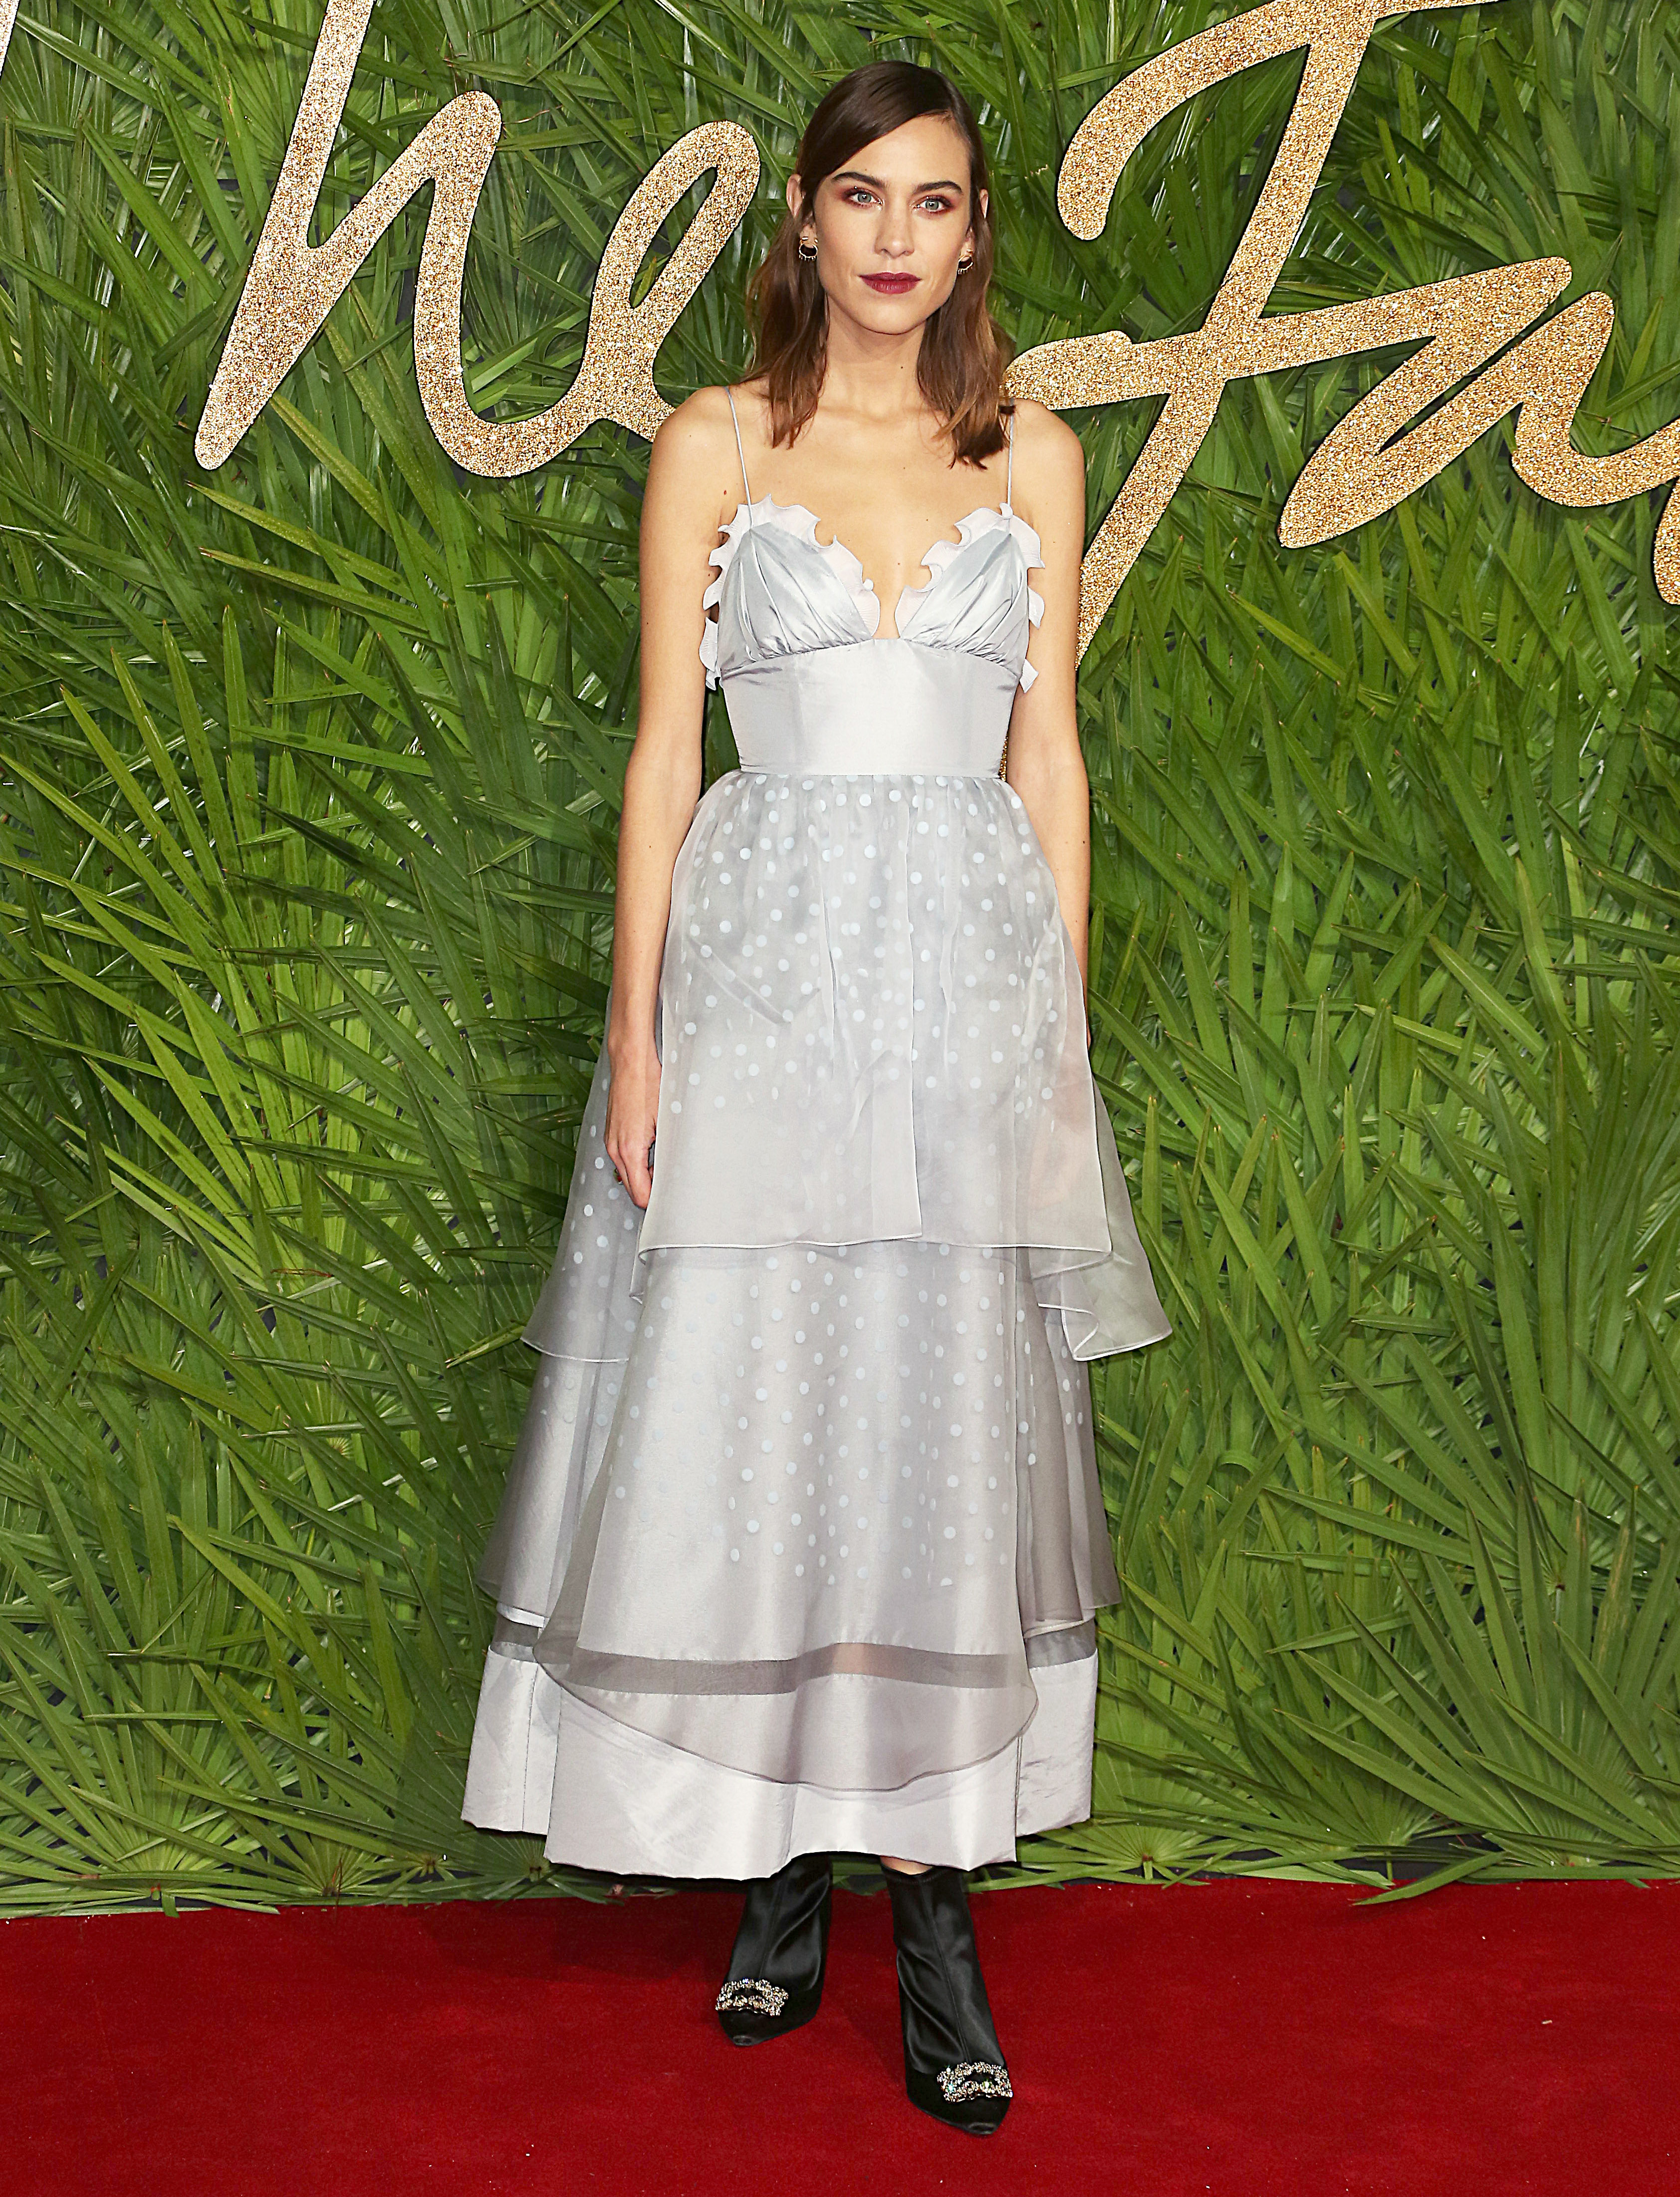 The Fashion Awards 2017, Royal Albert Hall, London UK, 04 December 2017, Photo by Brett D. Cove <P> Pictured: Alexa Chung <B>Ref: SPL1633061  051217  </B><BR/> Picture by: Brett D. Cove / Splash News<BR/> </P><P> <B>Splash News and Pictures</B><BR/> Los Angeles:310-821-2666<BR/> New York:212-619-2666<BR/> London:870-934-2666<BR/> <span id=